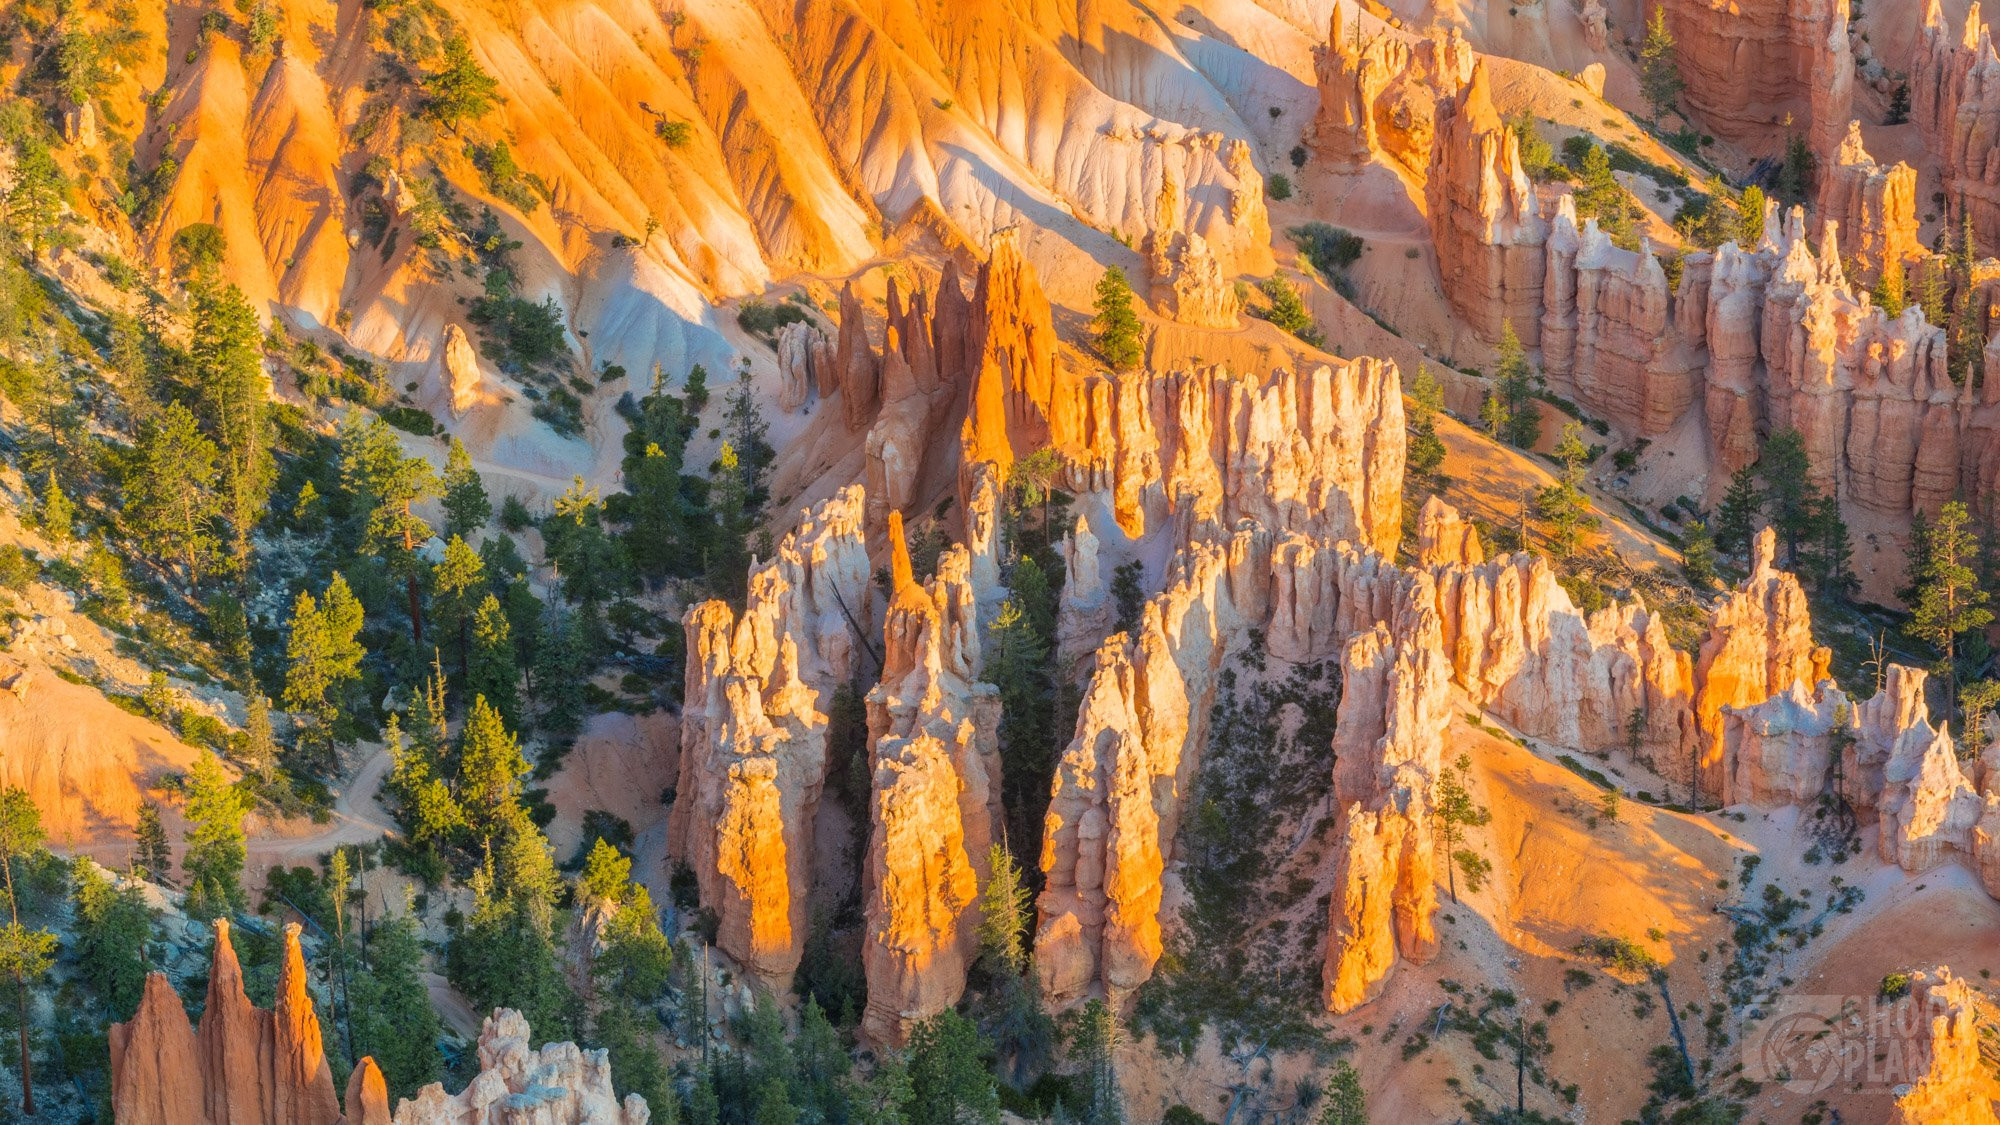 Bryce Canyon National Park rock forest, USA